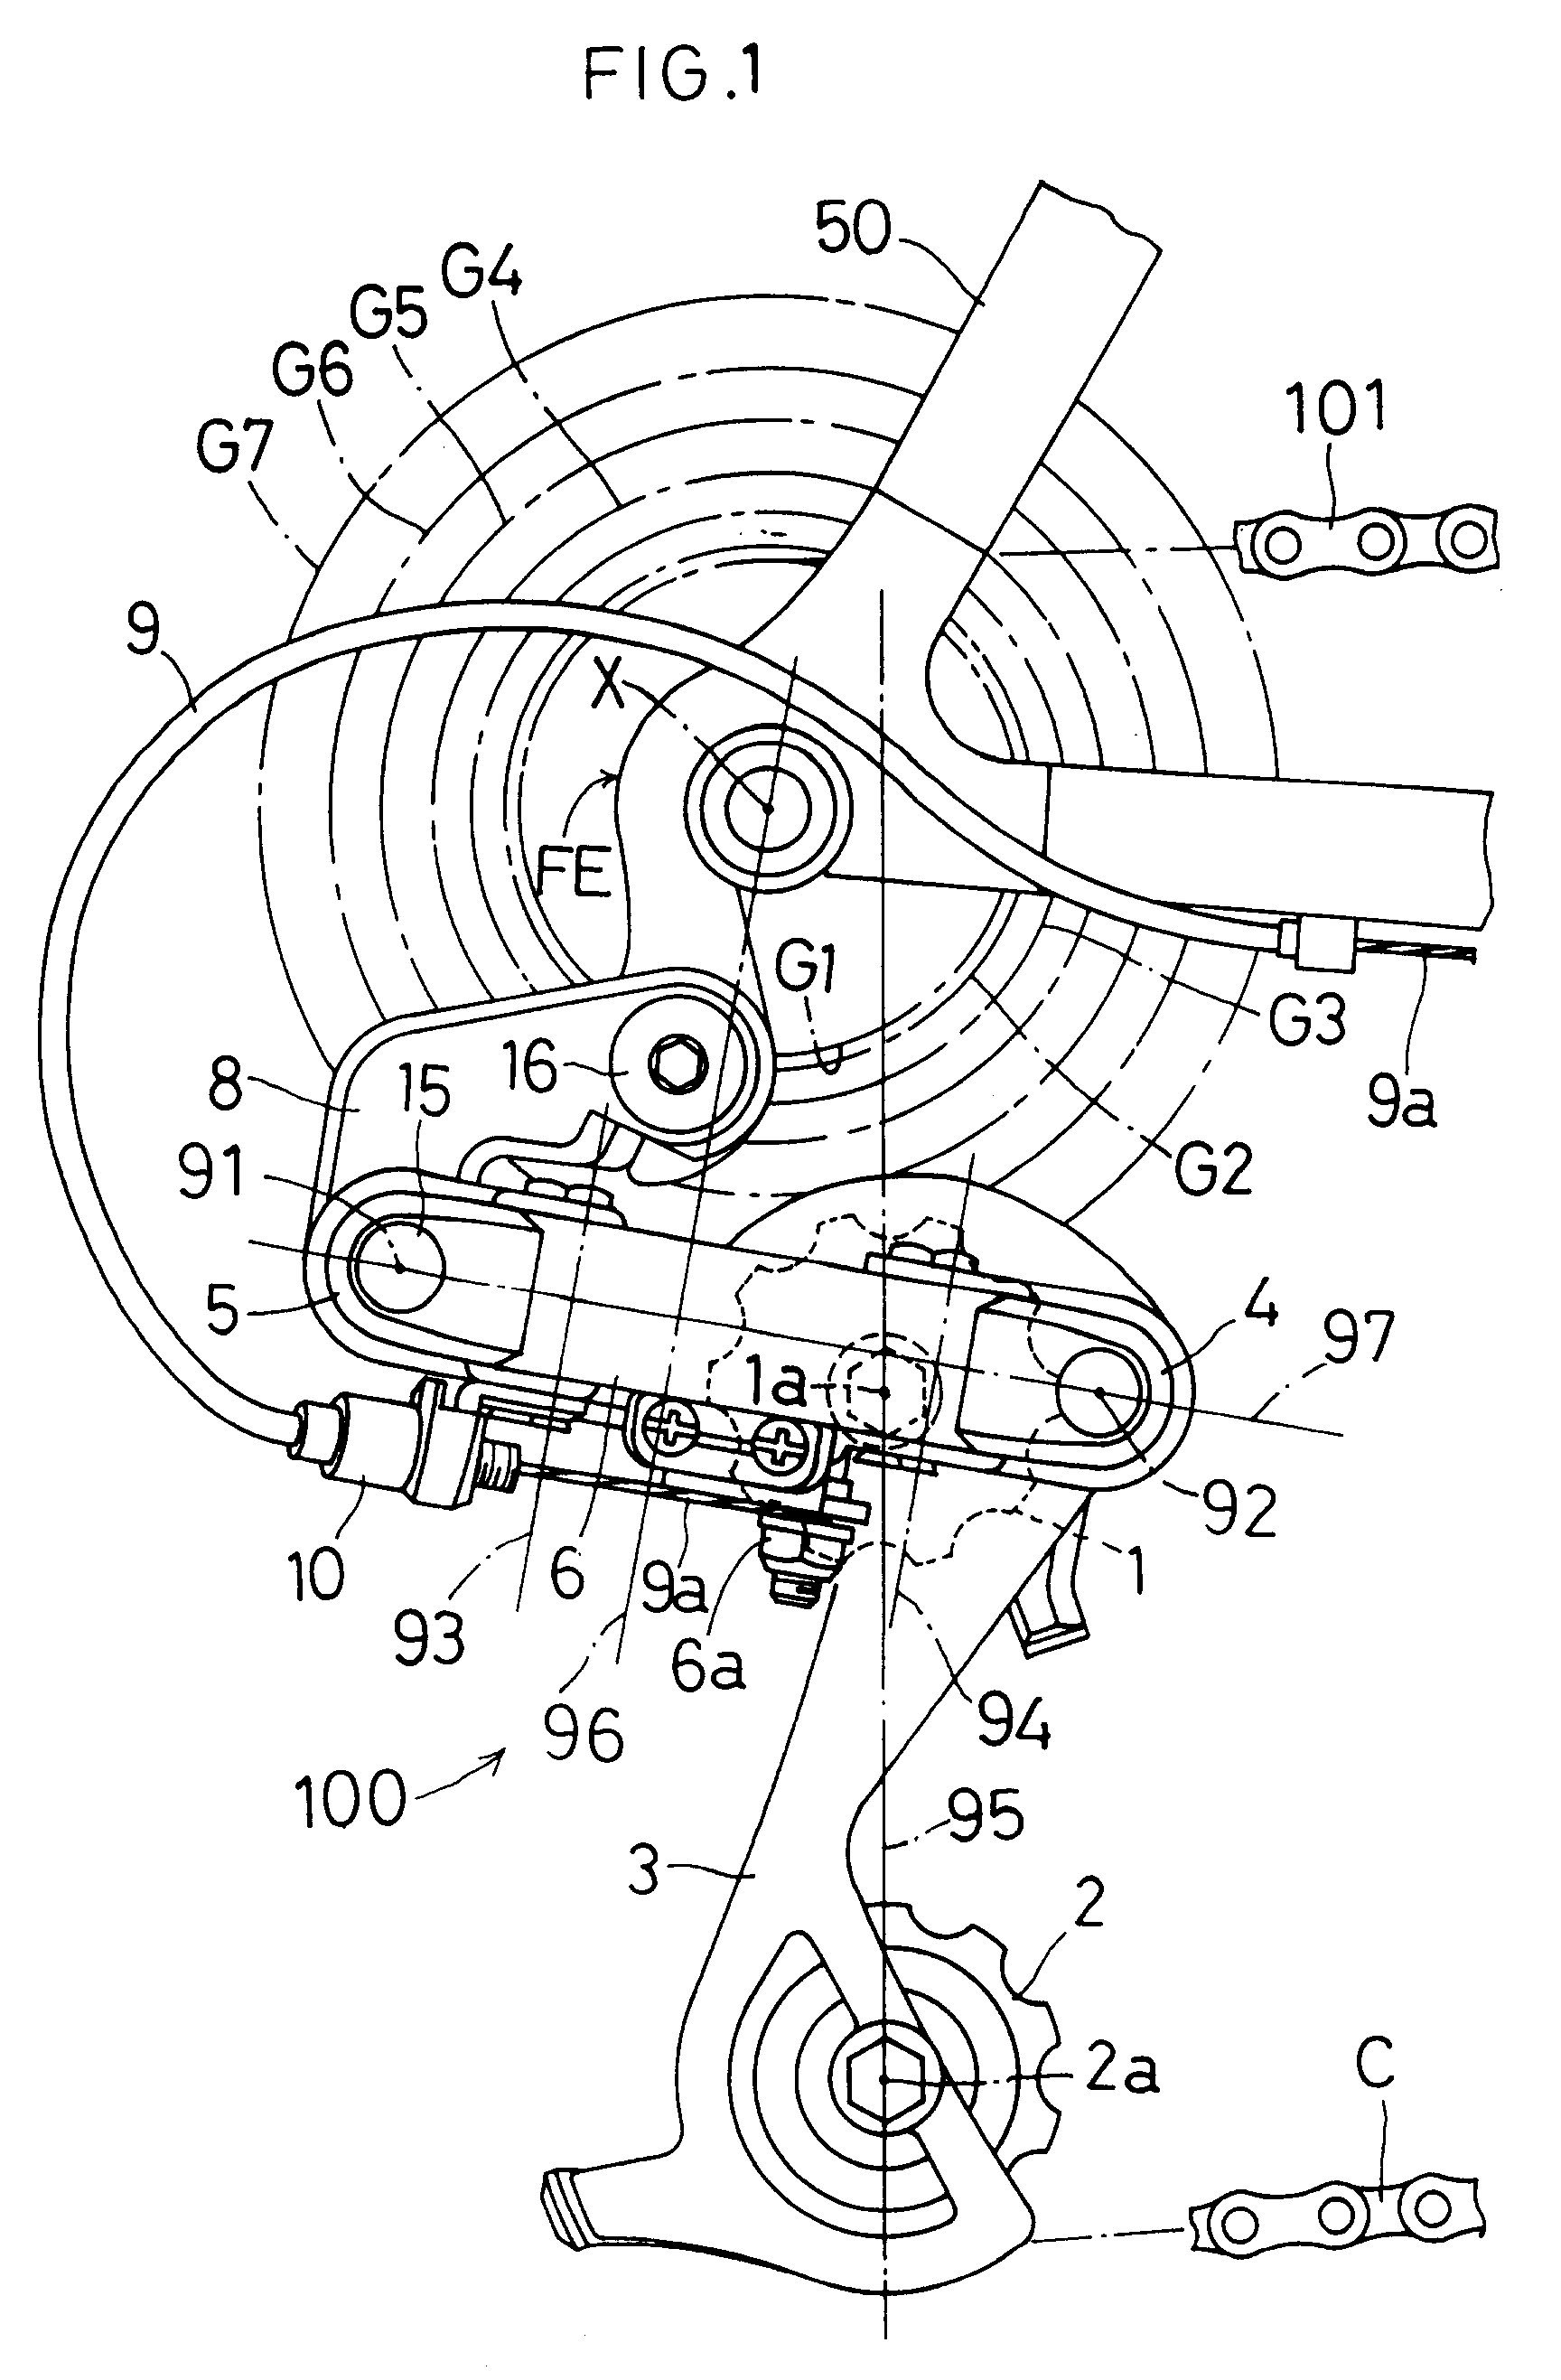 patent ep0609834a1 bicycle rear derailleur bracket. Black Bedroom Furniture Sets. Home Design Ideas